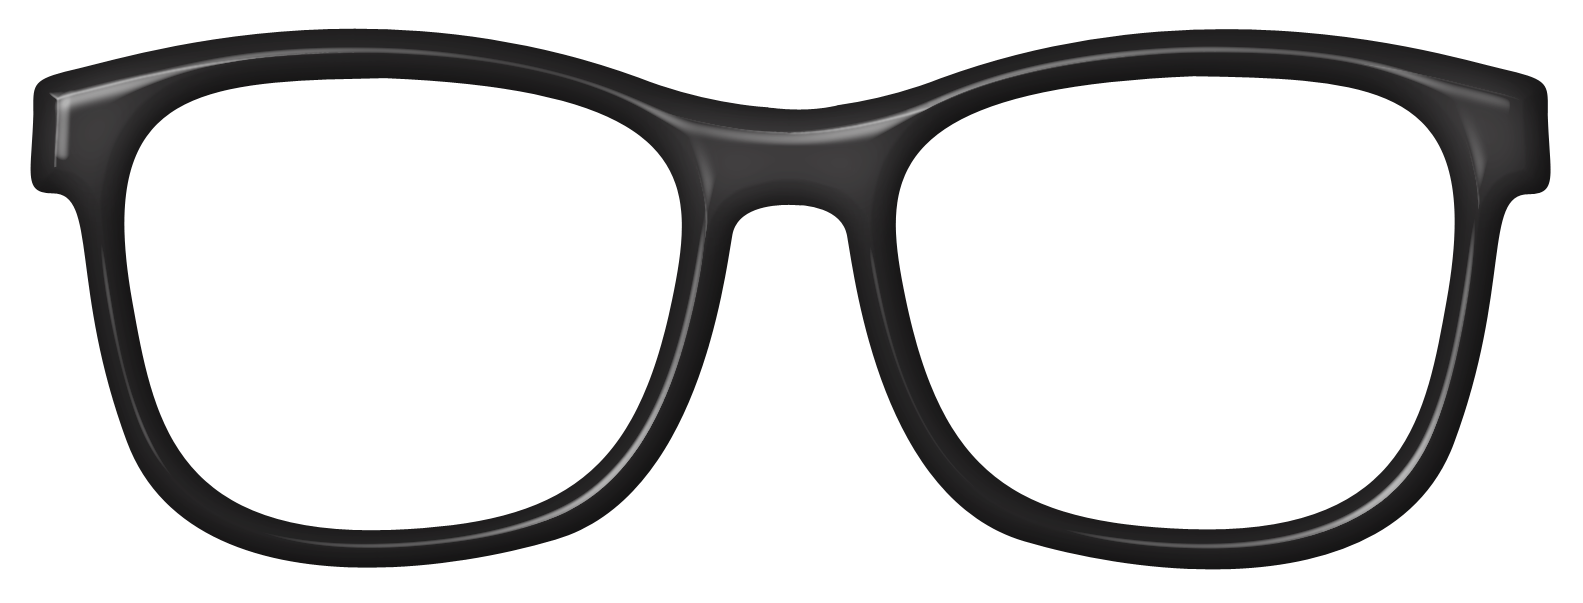 Sunglasses Optics Clip art.